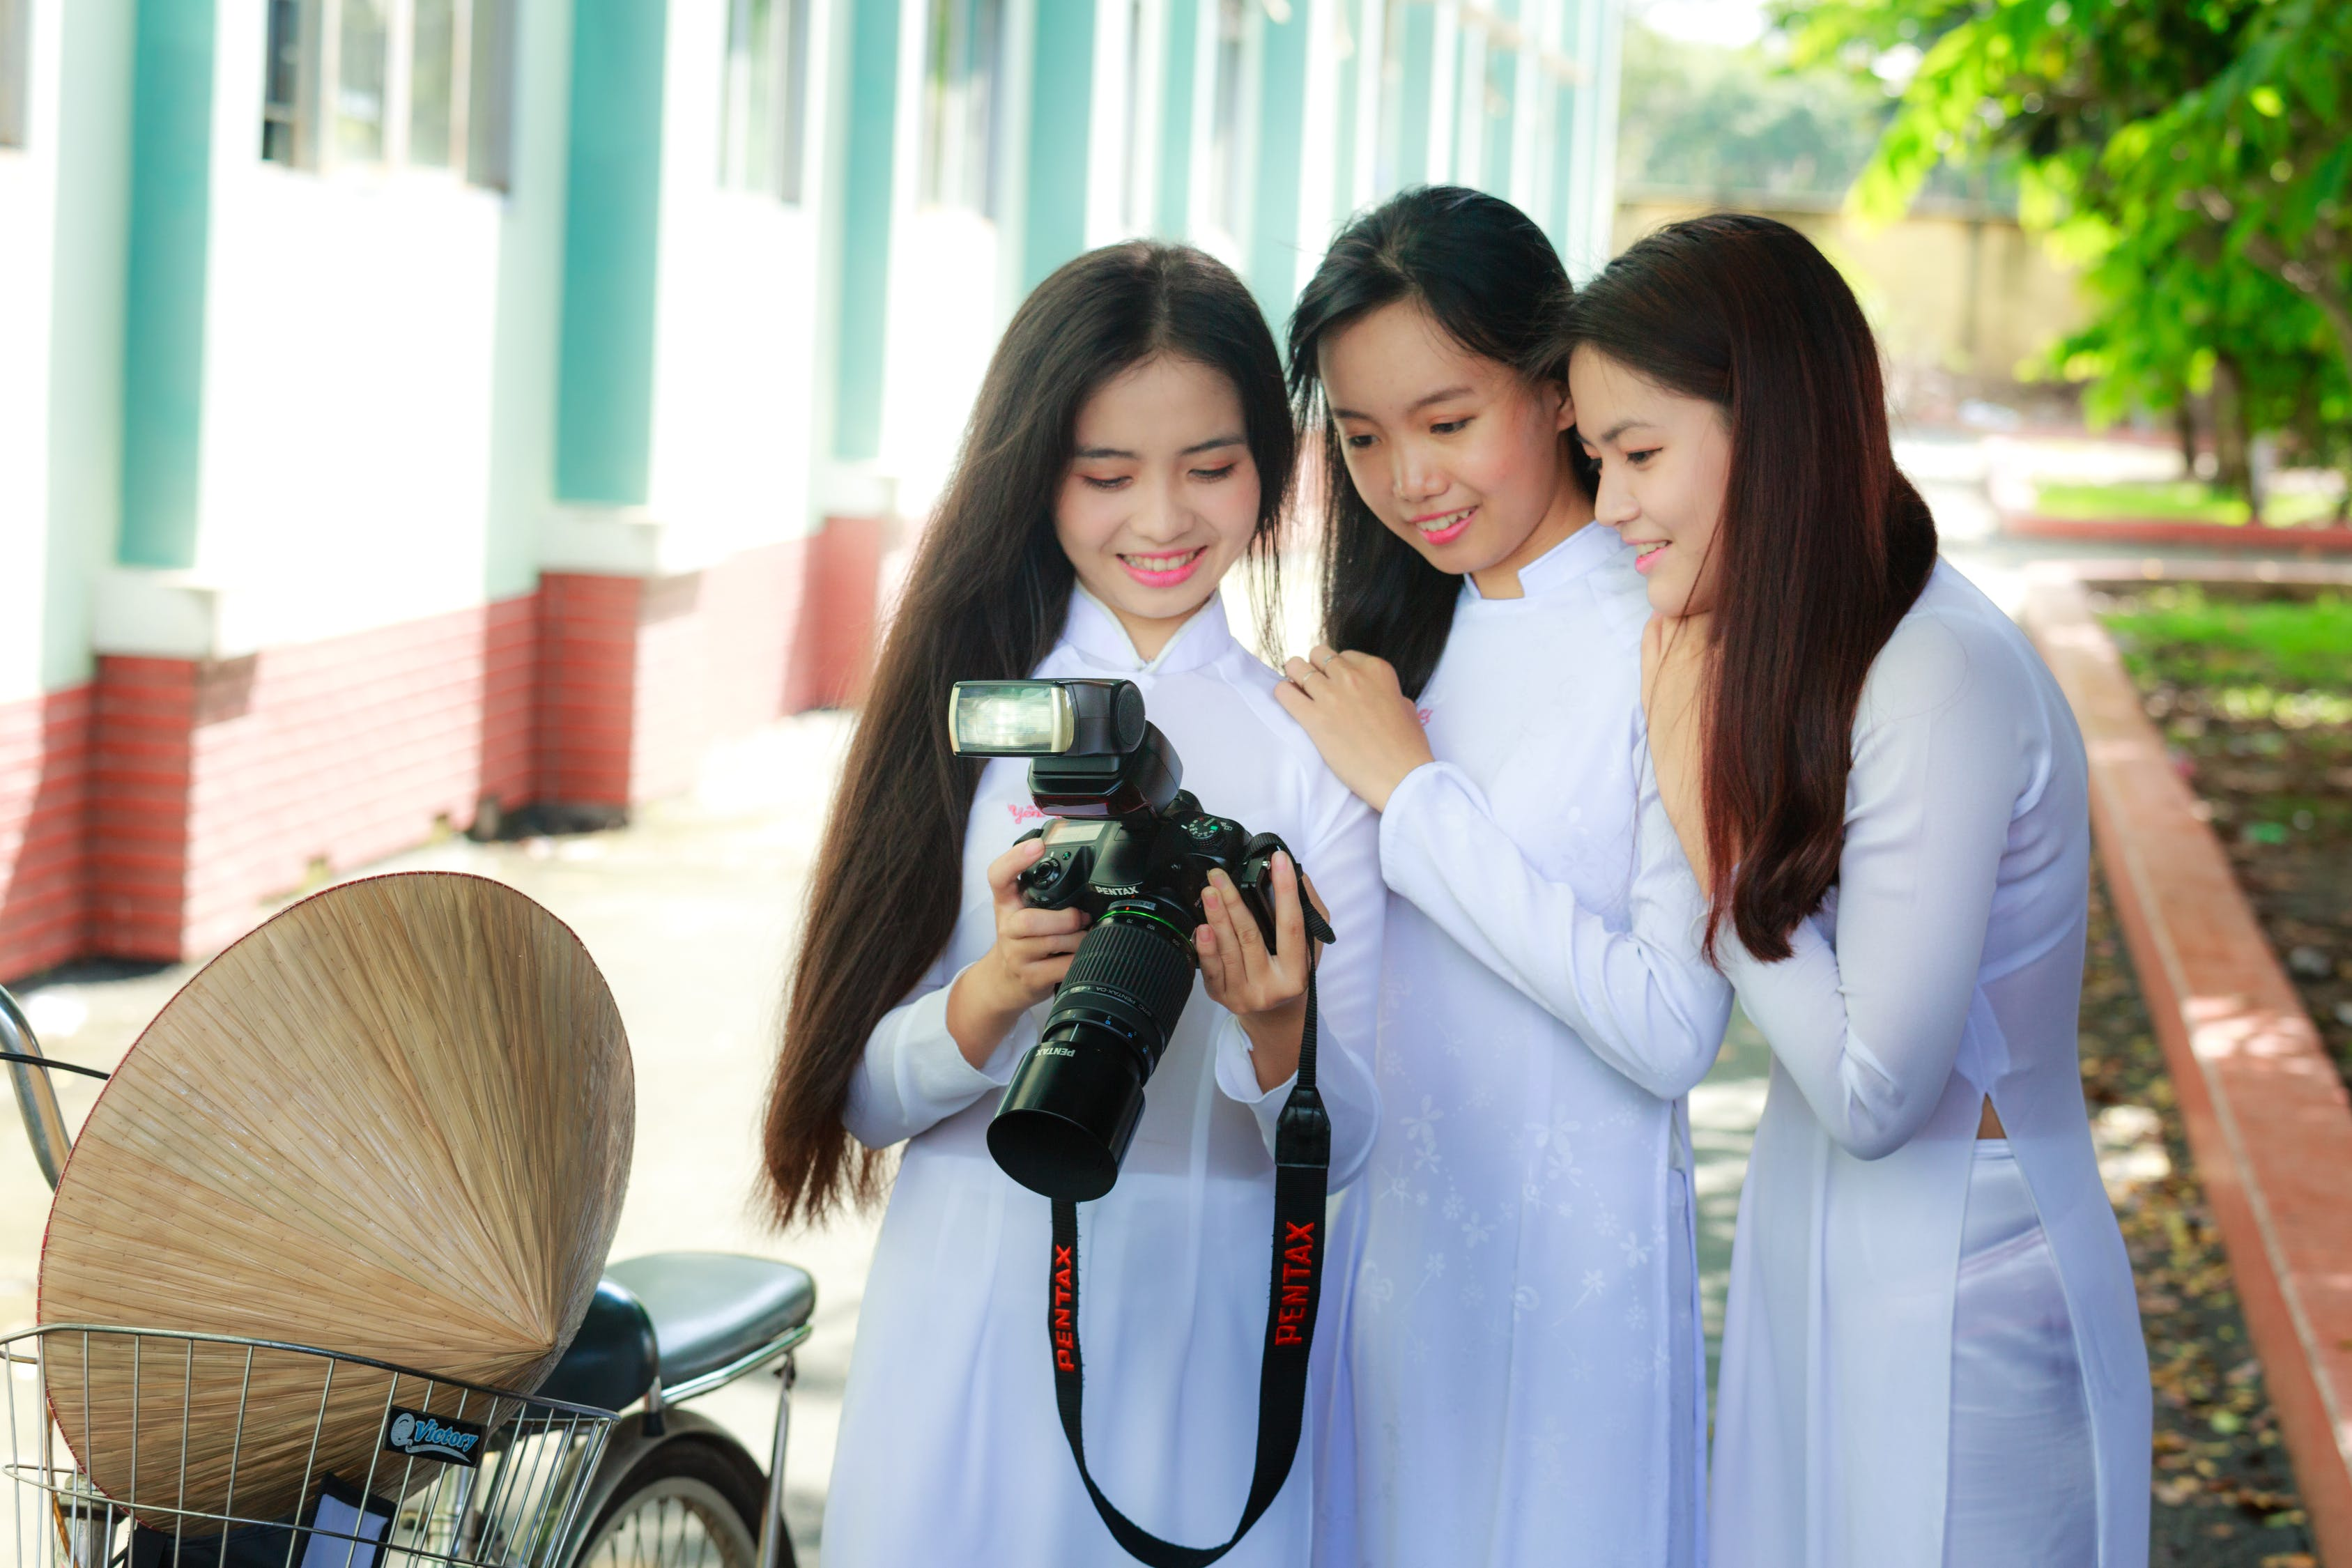 Photo of Three Women in White Outfits Checking Photos on The Screen of a DSLR camera.